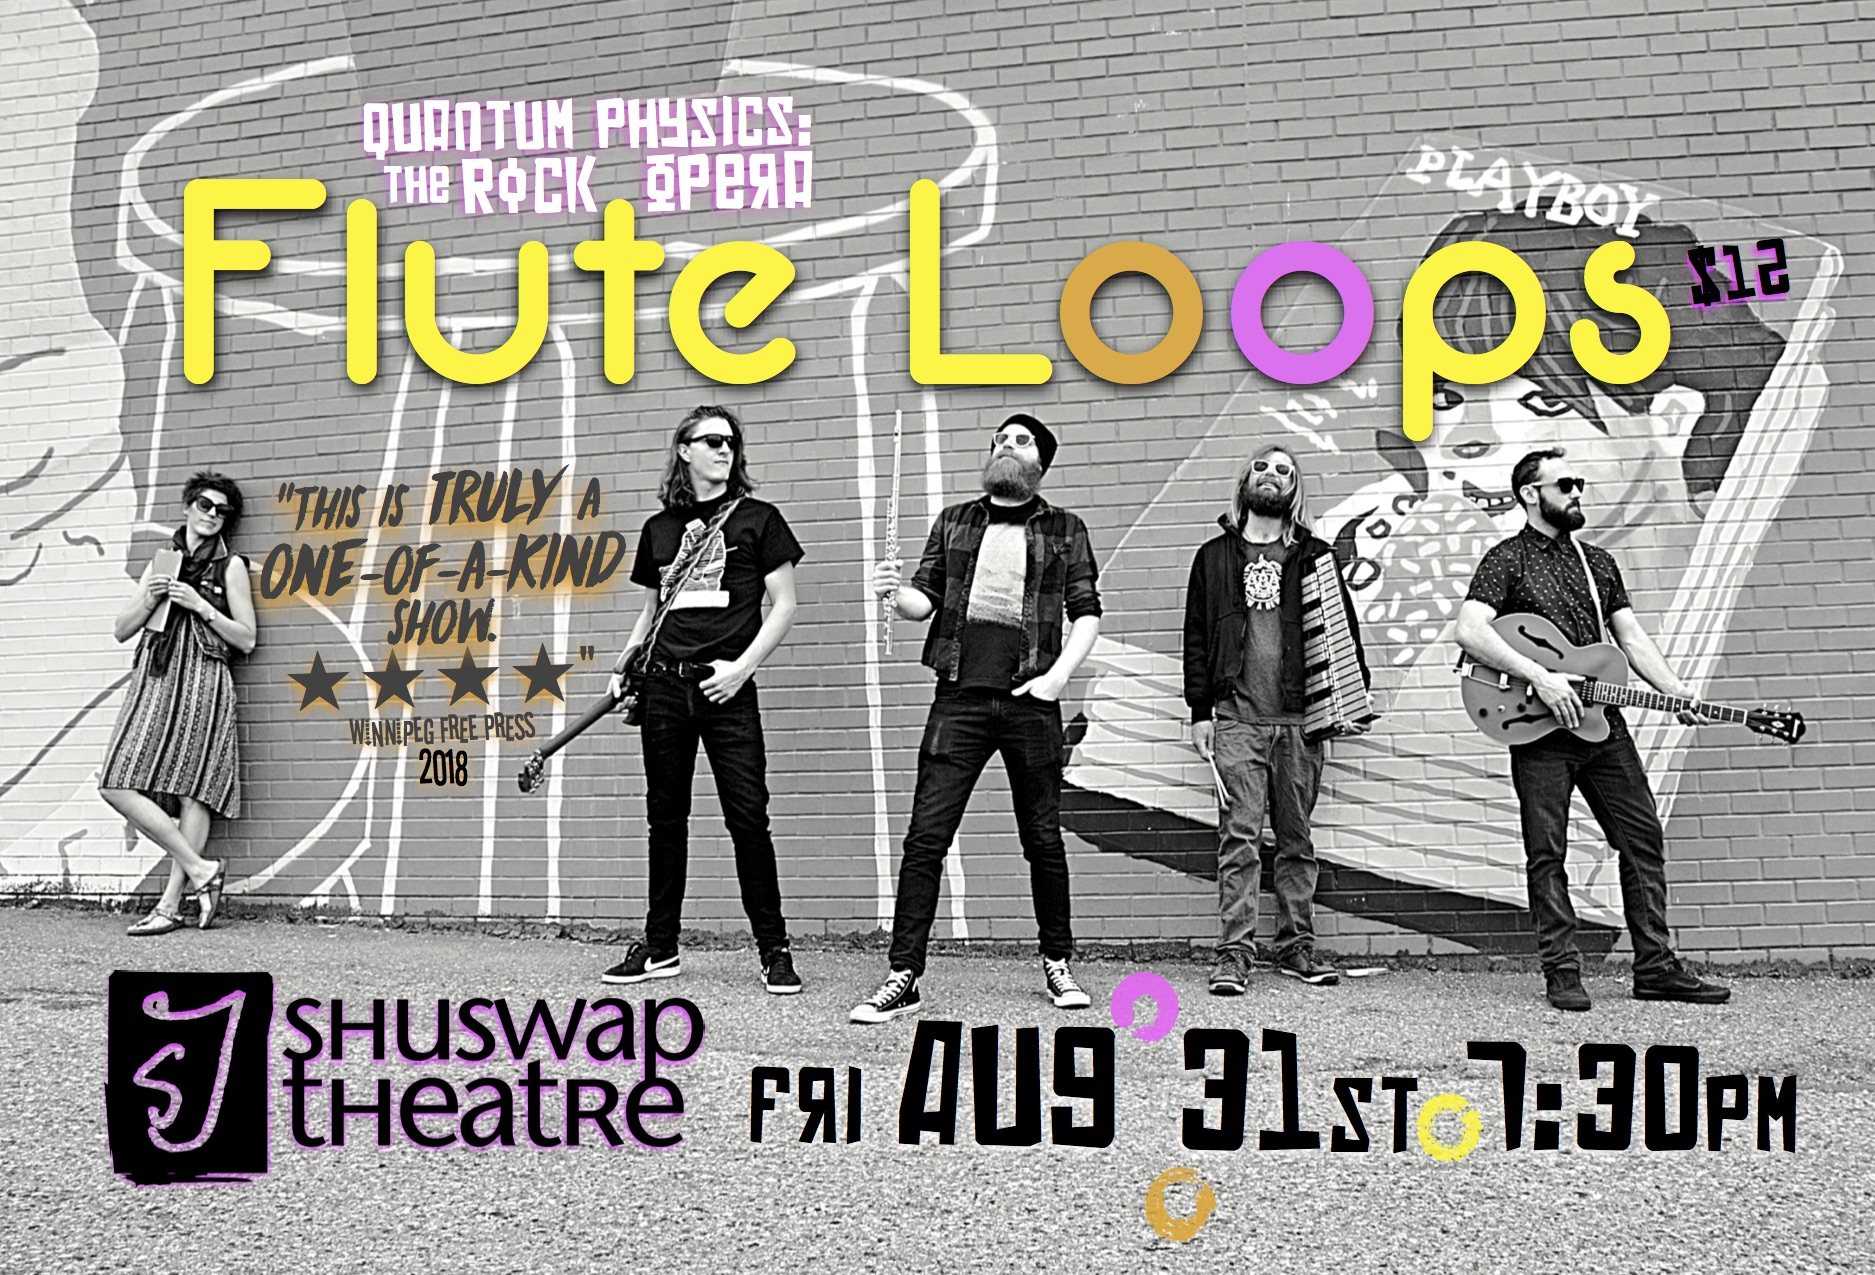 Shuswap Theatre  presents   Flute Loops  , for ONE NIGHT ONLY in Salmon Arm: August 31!